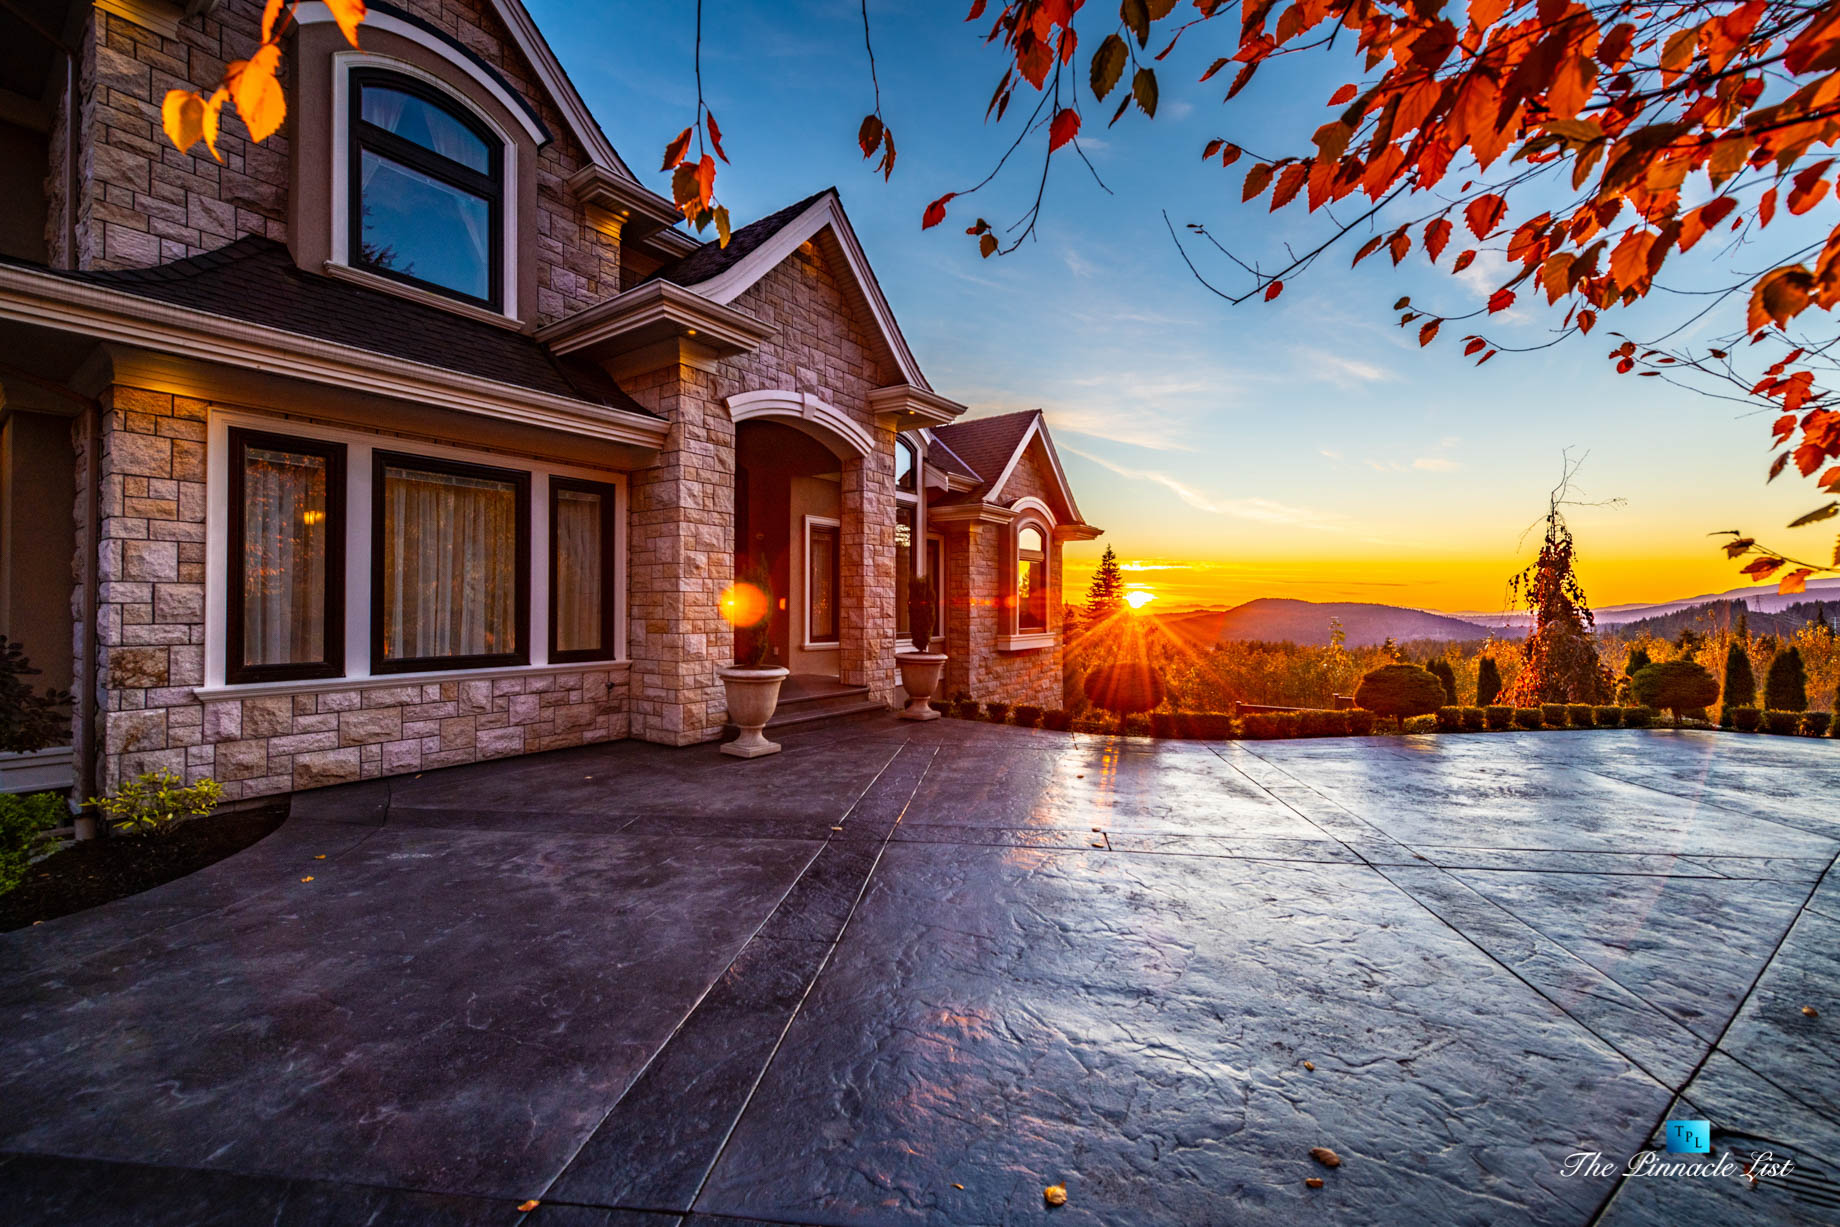 2057 Ridge Mountain Drive, Anmore, BC, Canada - House Front Private Driveway Sunset - Luxury Real Estate - West Coast Greater Vancouver Home